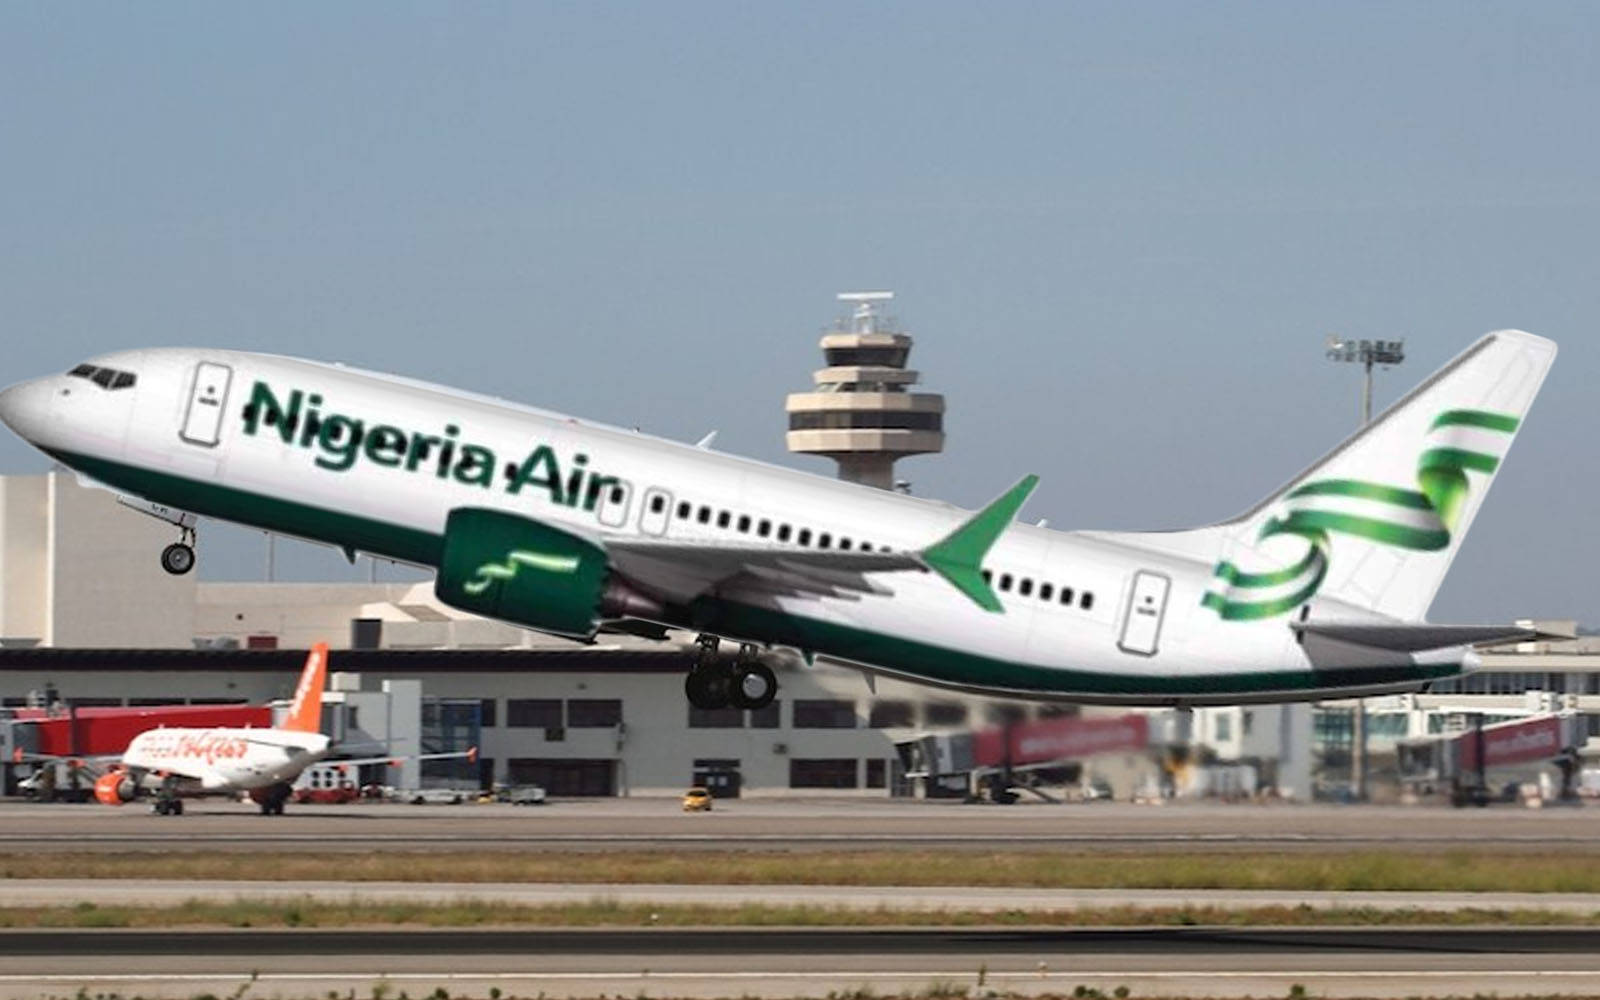 FEC suspends Nigeria Air, Aviation Minister says